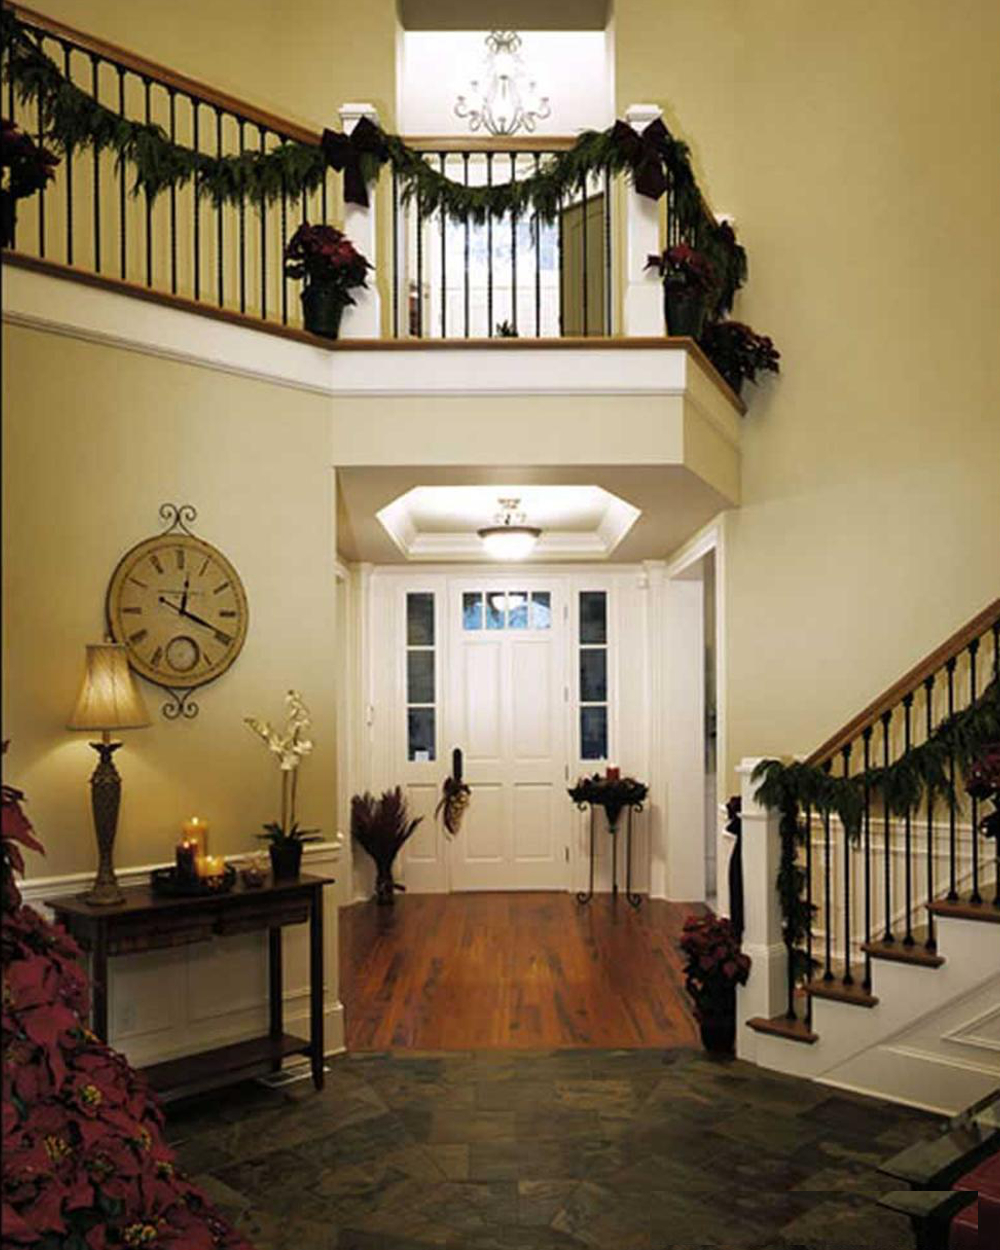 Foyer at Christmas.